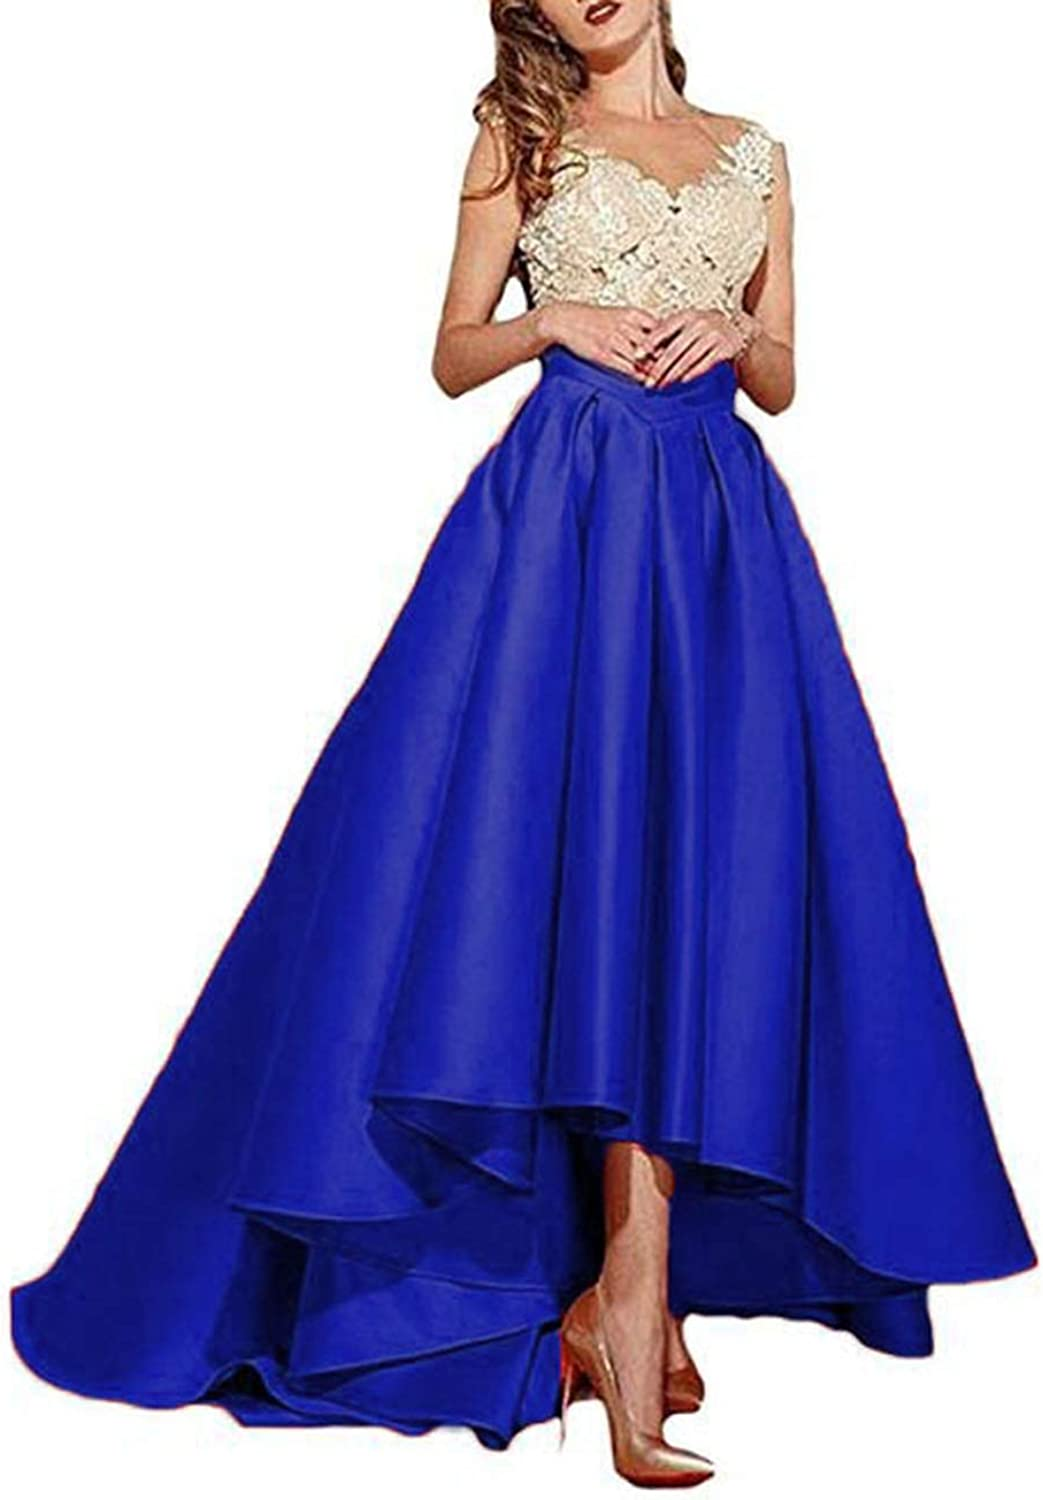 Alilith.Z Sexy Lace Appliques Prom Dresses High Low Formal Evening Dresses Party Gowns for Women